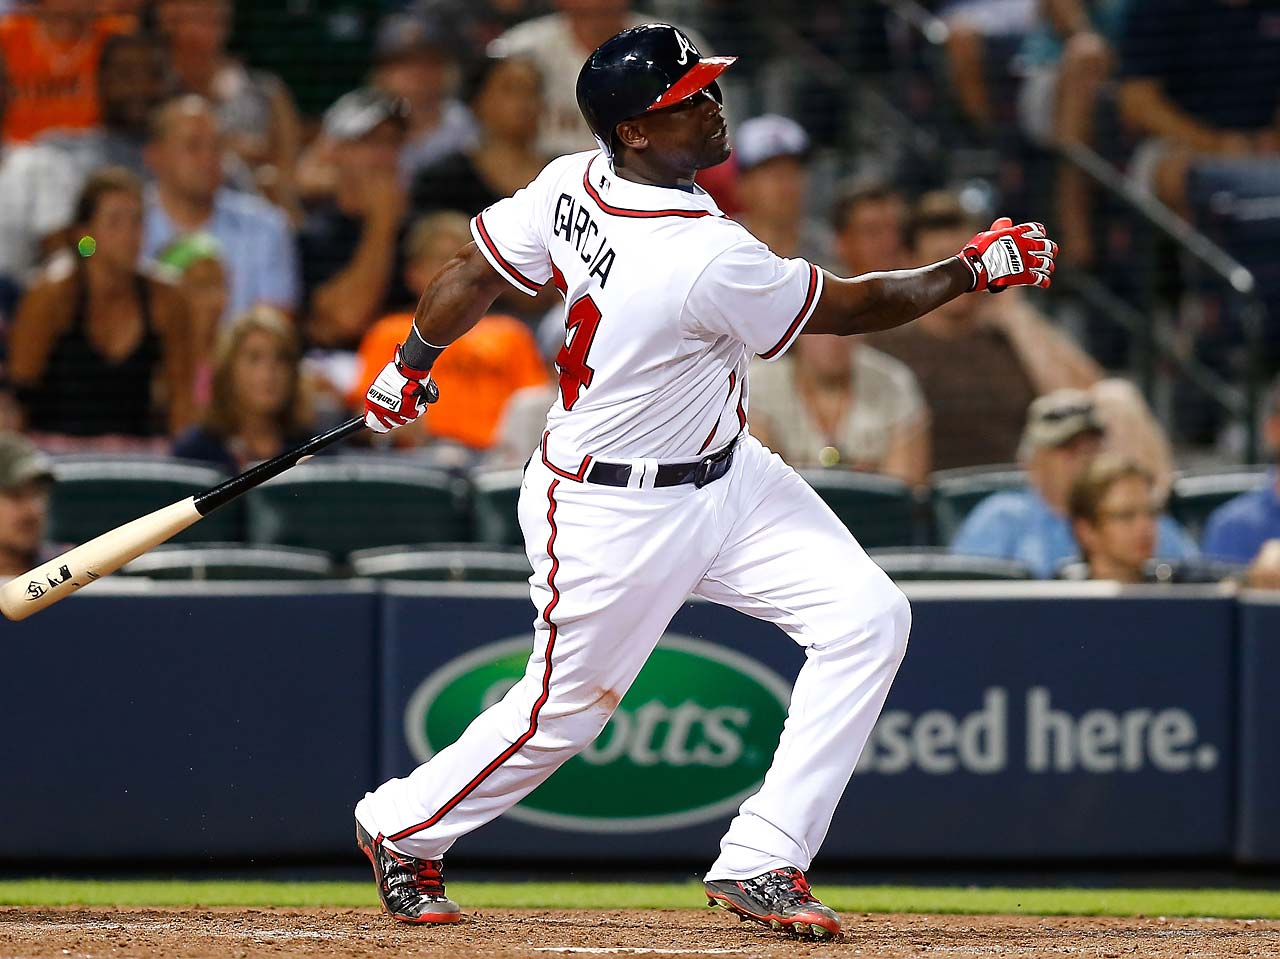 Adonis Garcia hit a two-run walk-off homer in the 12th inning to give the Atlanta Braves a 9-8 victory over the San Francisco Giants on Aug. 3.